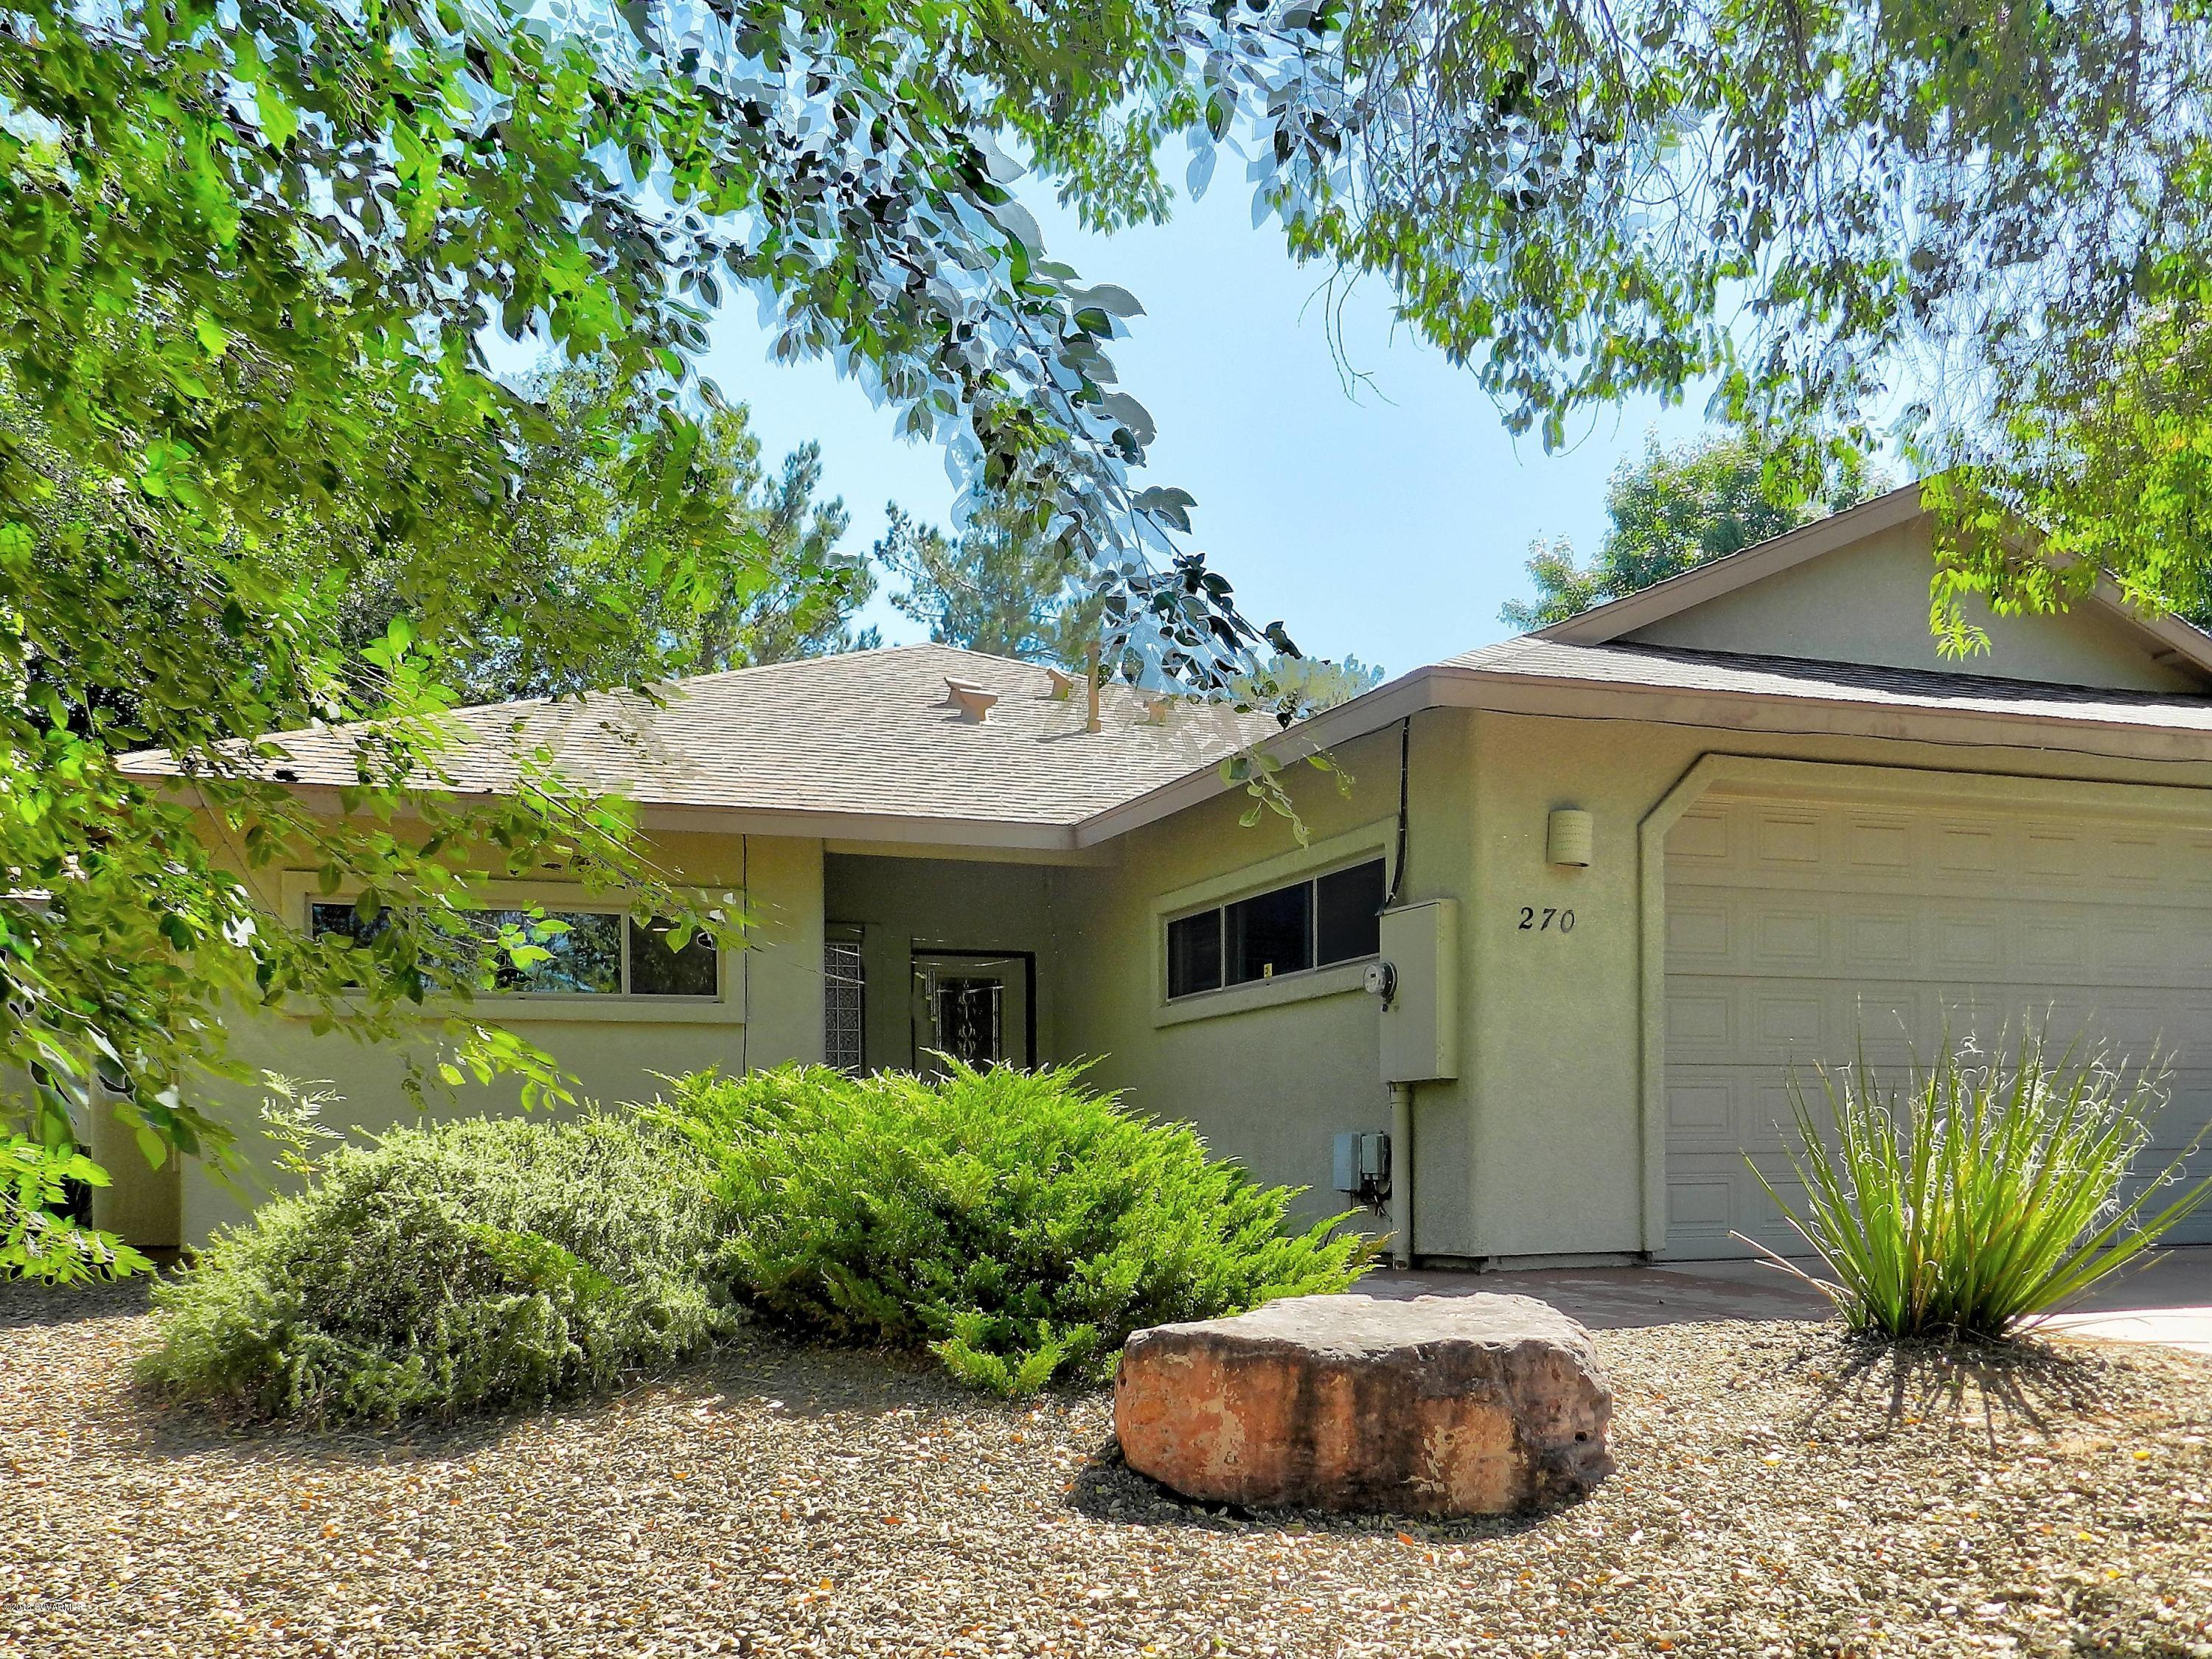 270 Oak Creek Blvd Sedona, AZ 86336